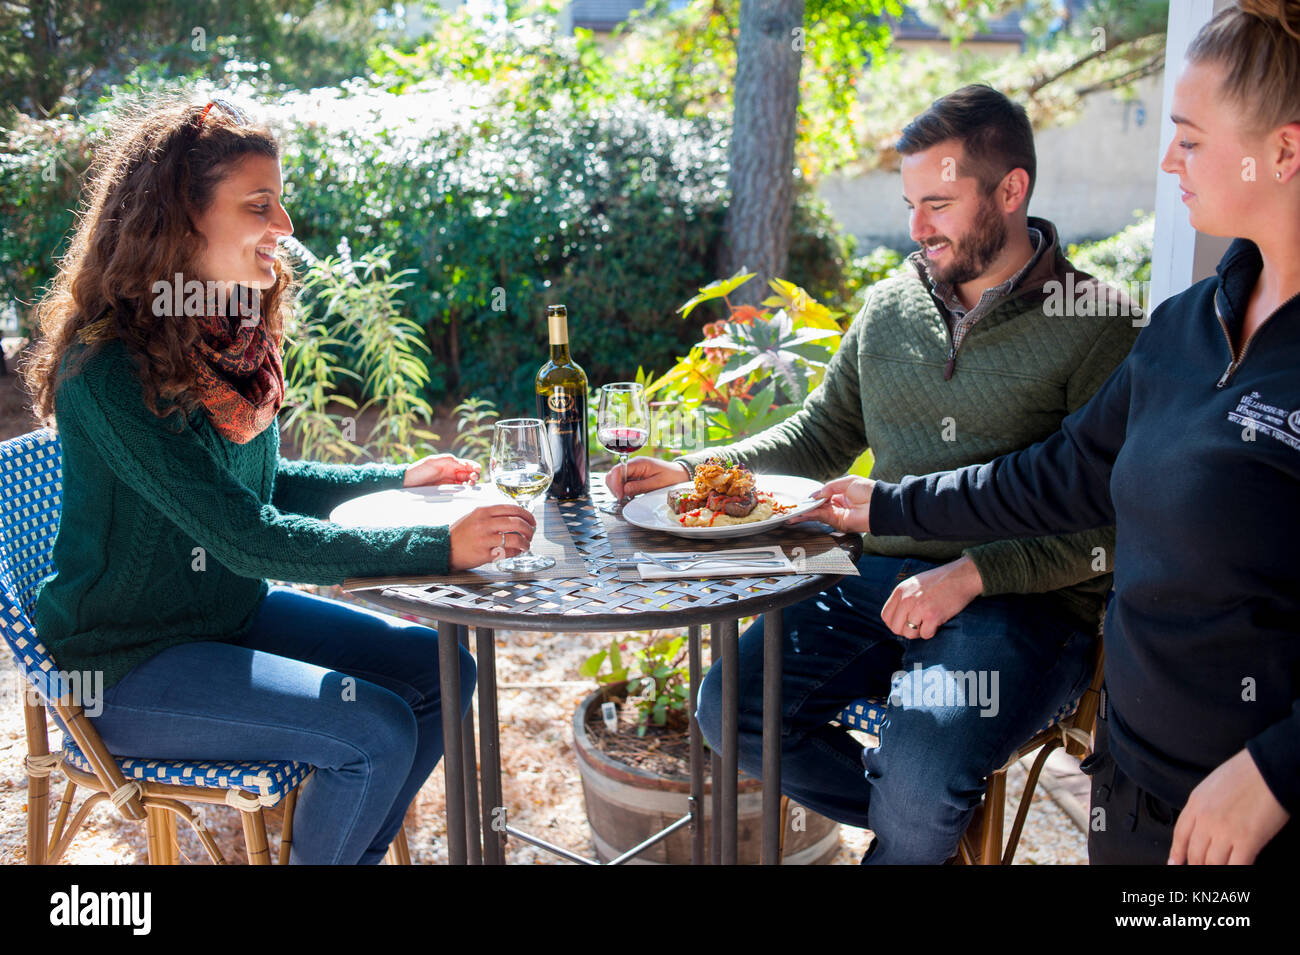 USA Virginia VA Williamsburg Winery dining restaurant wine vineyard food couple being served in the garden restaurant - Stock Image